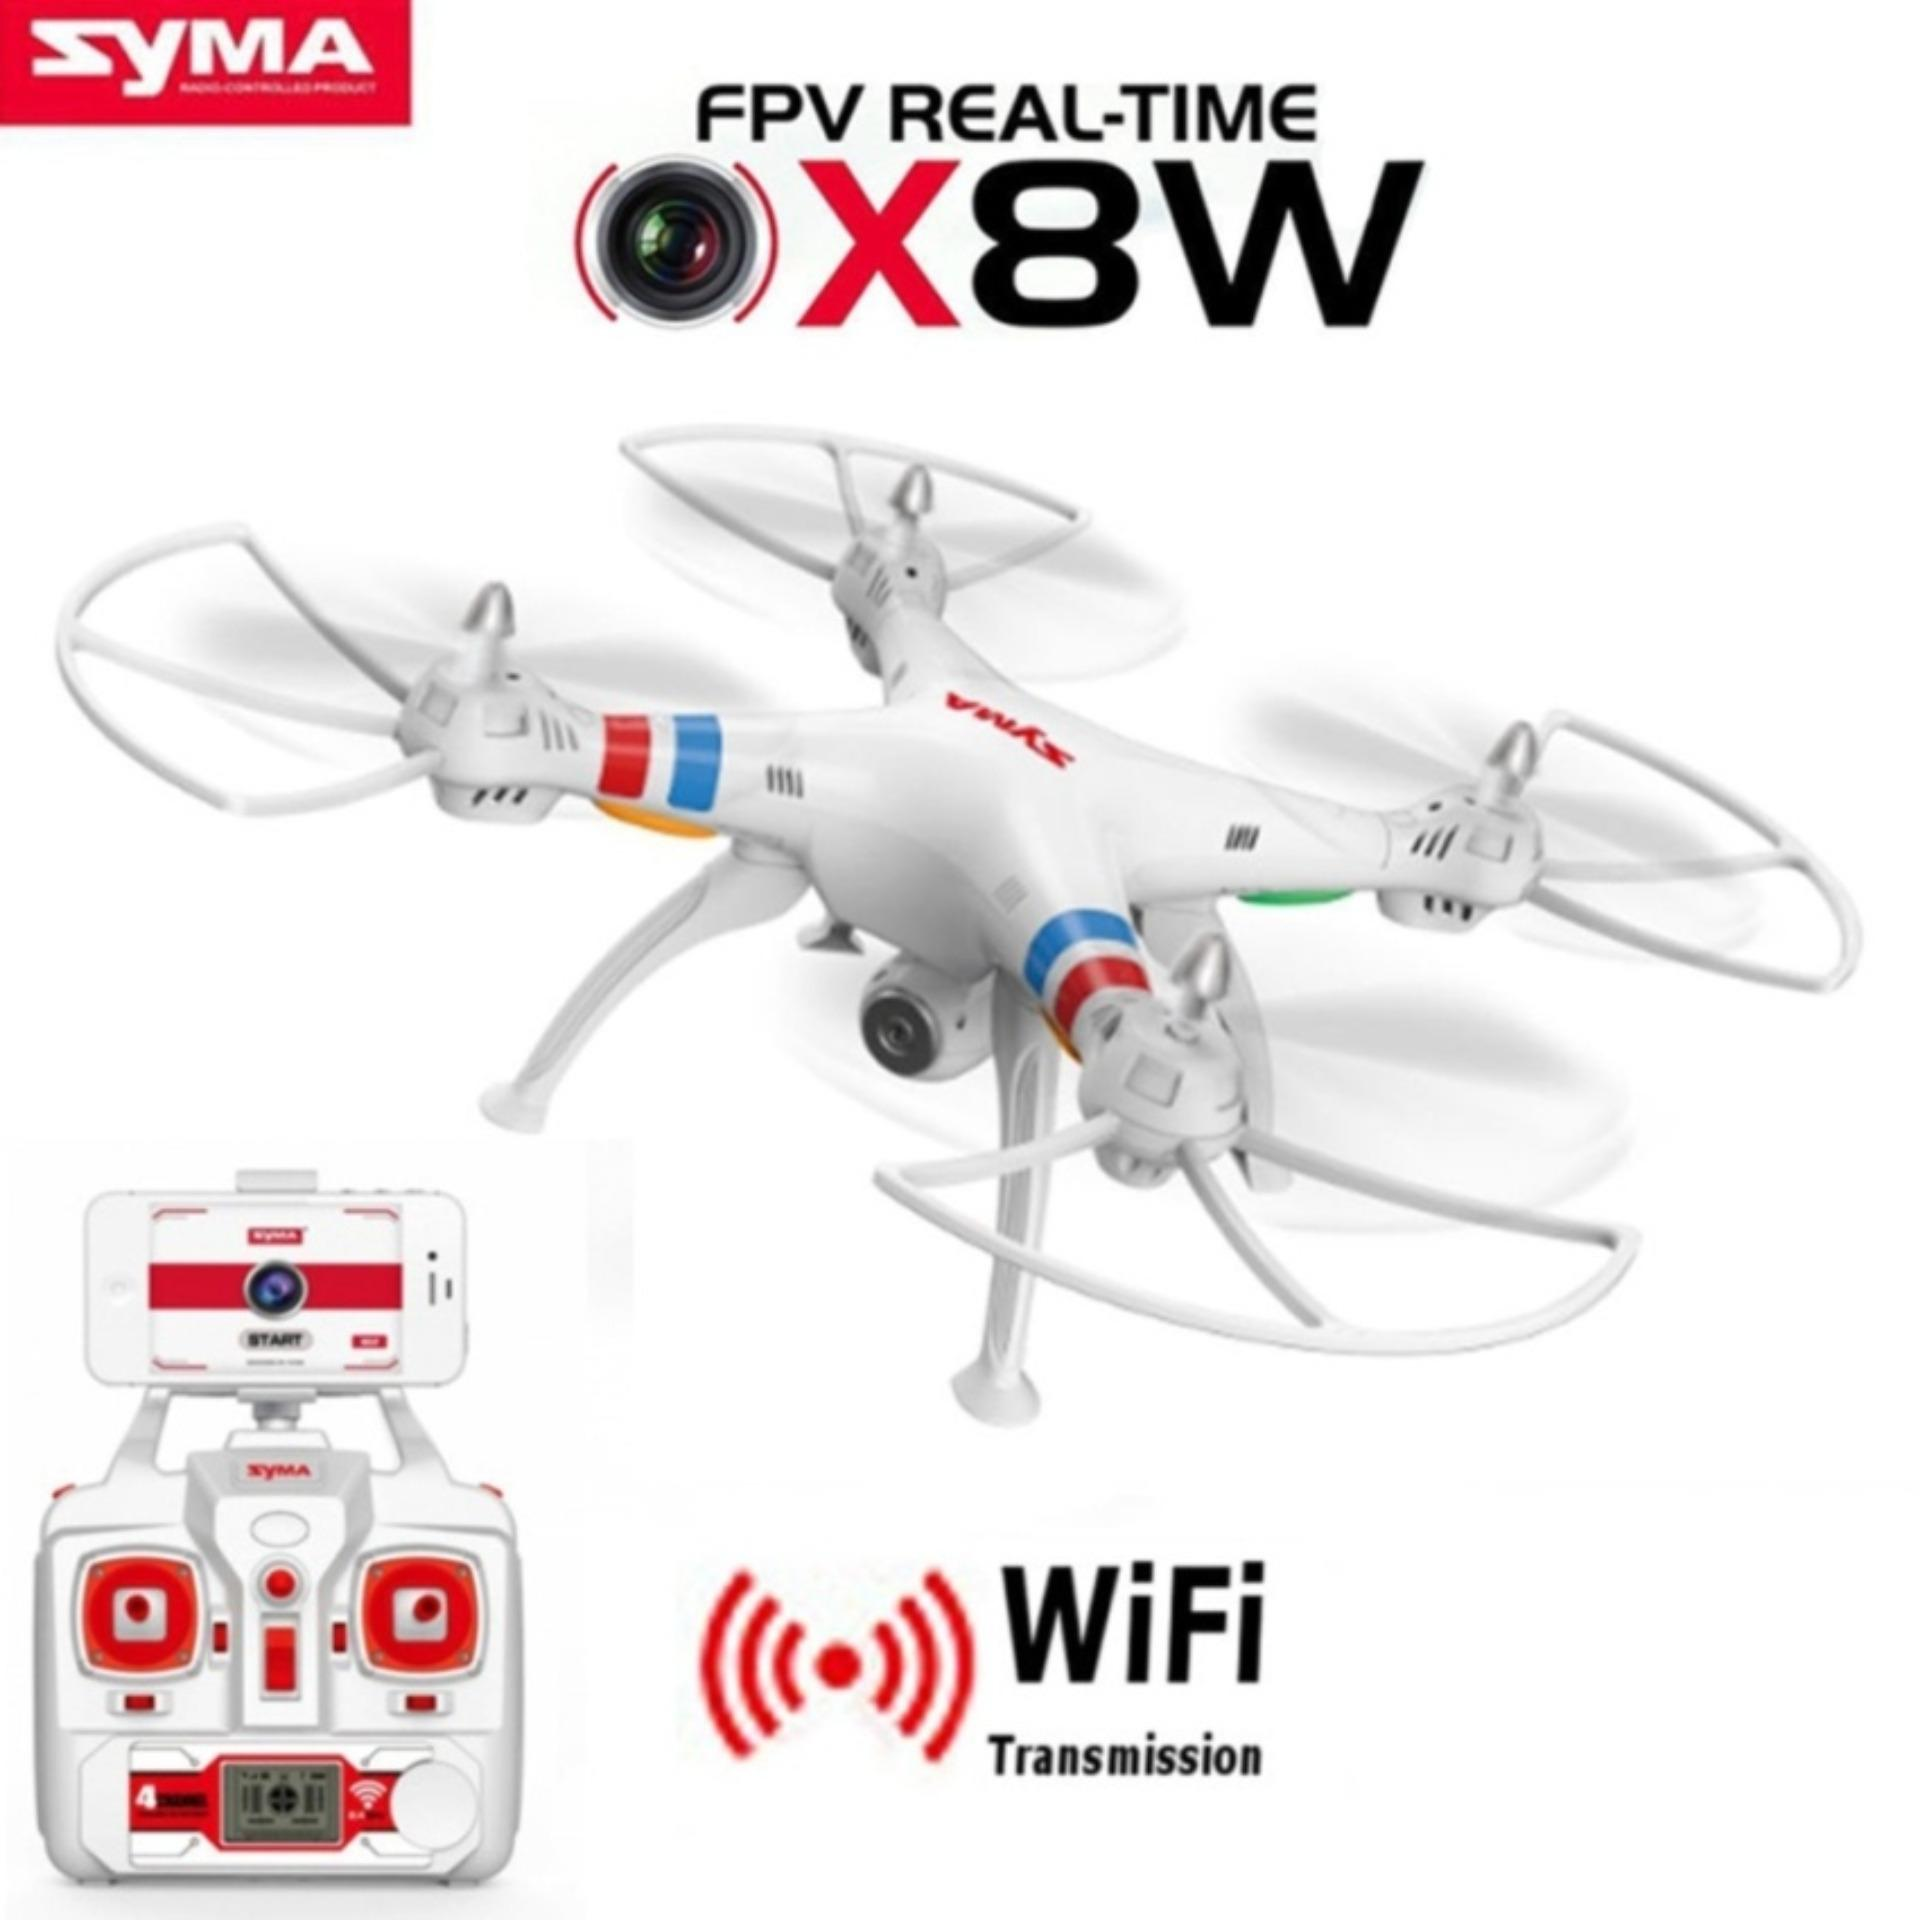 SYMA X8W FPV RC Quadcopter Drone with WIFI Camera 2.4G 6 Axis - Support Action